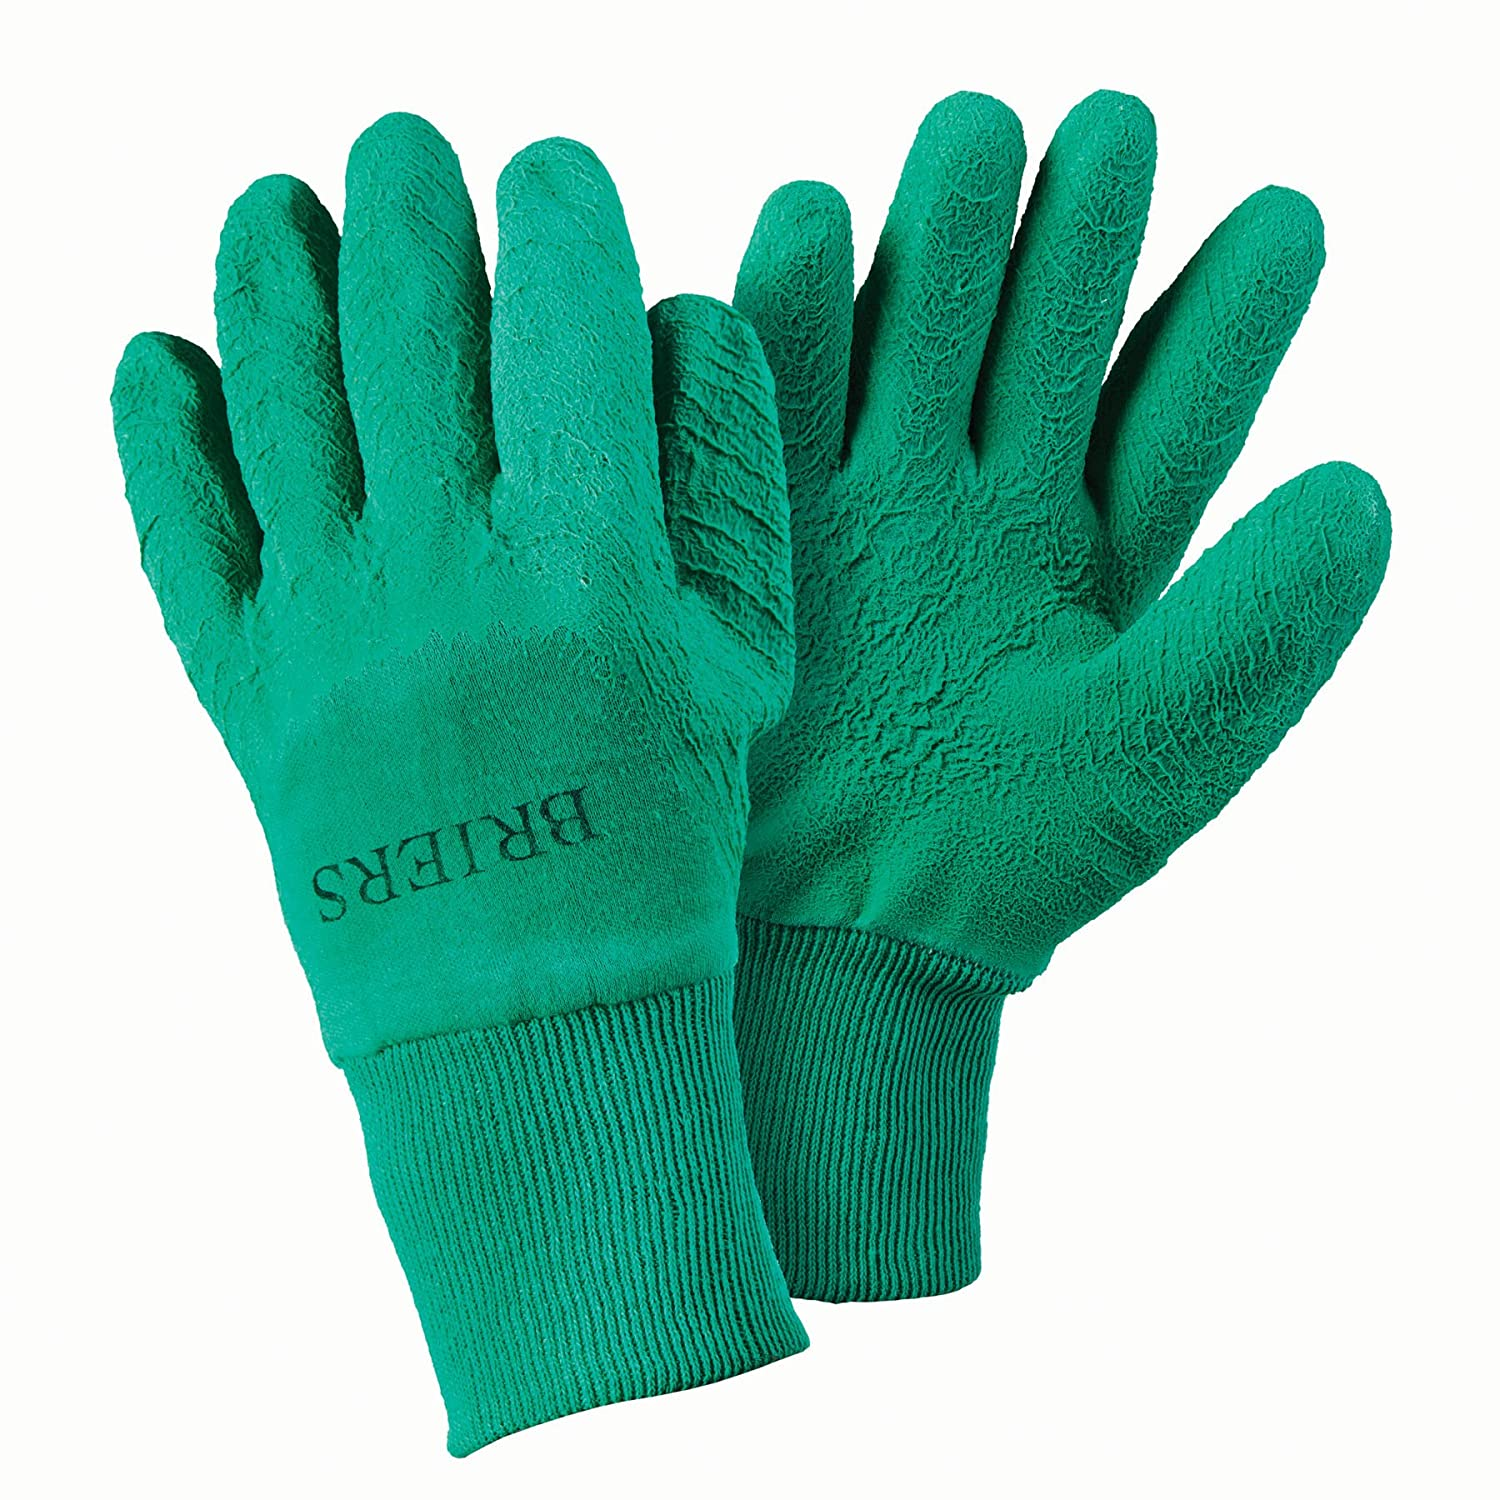 Briers Womens/Ladies All Rounder Gardening Gloves, Various Sizes